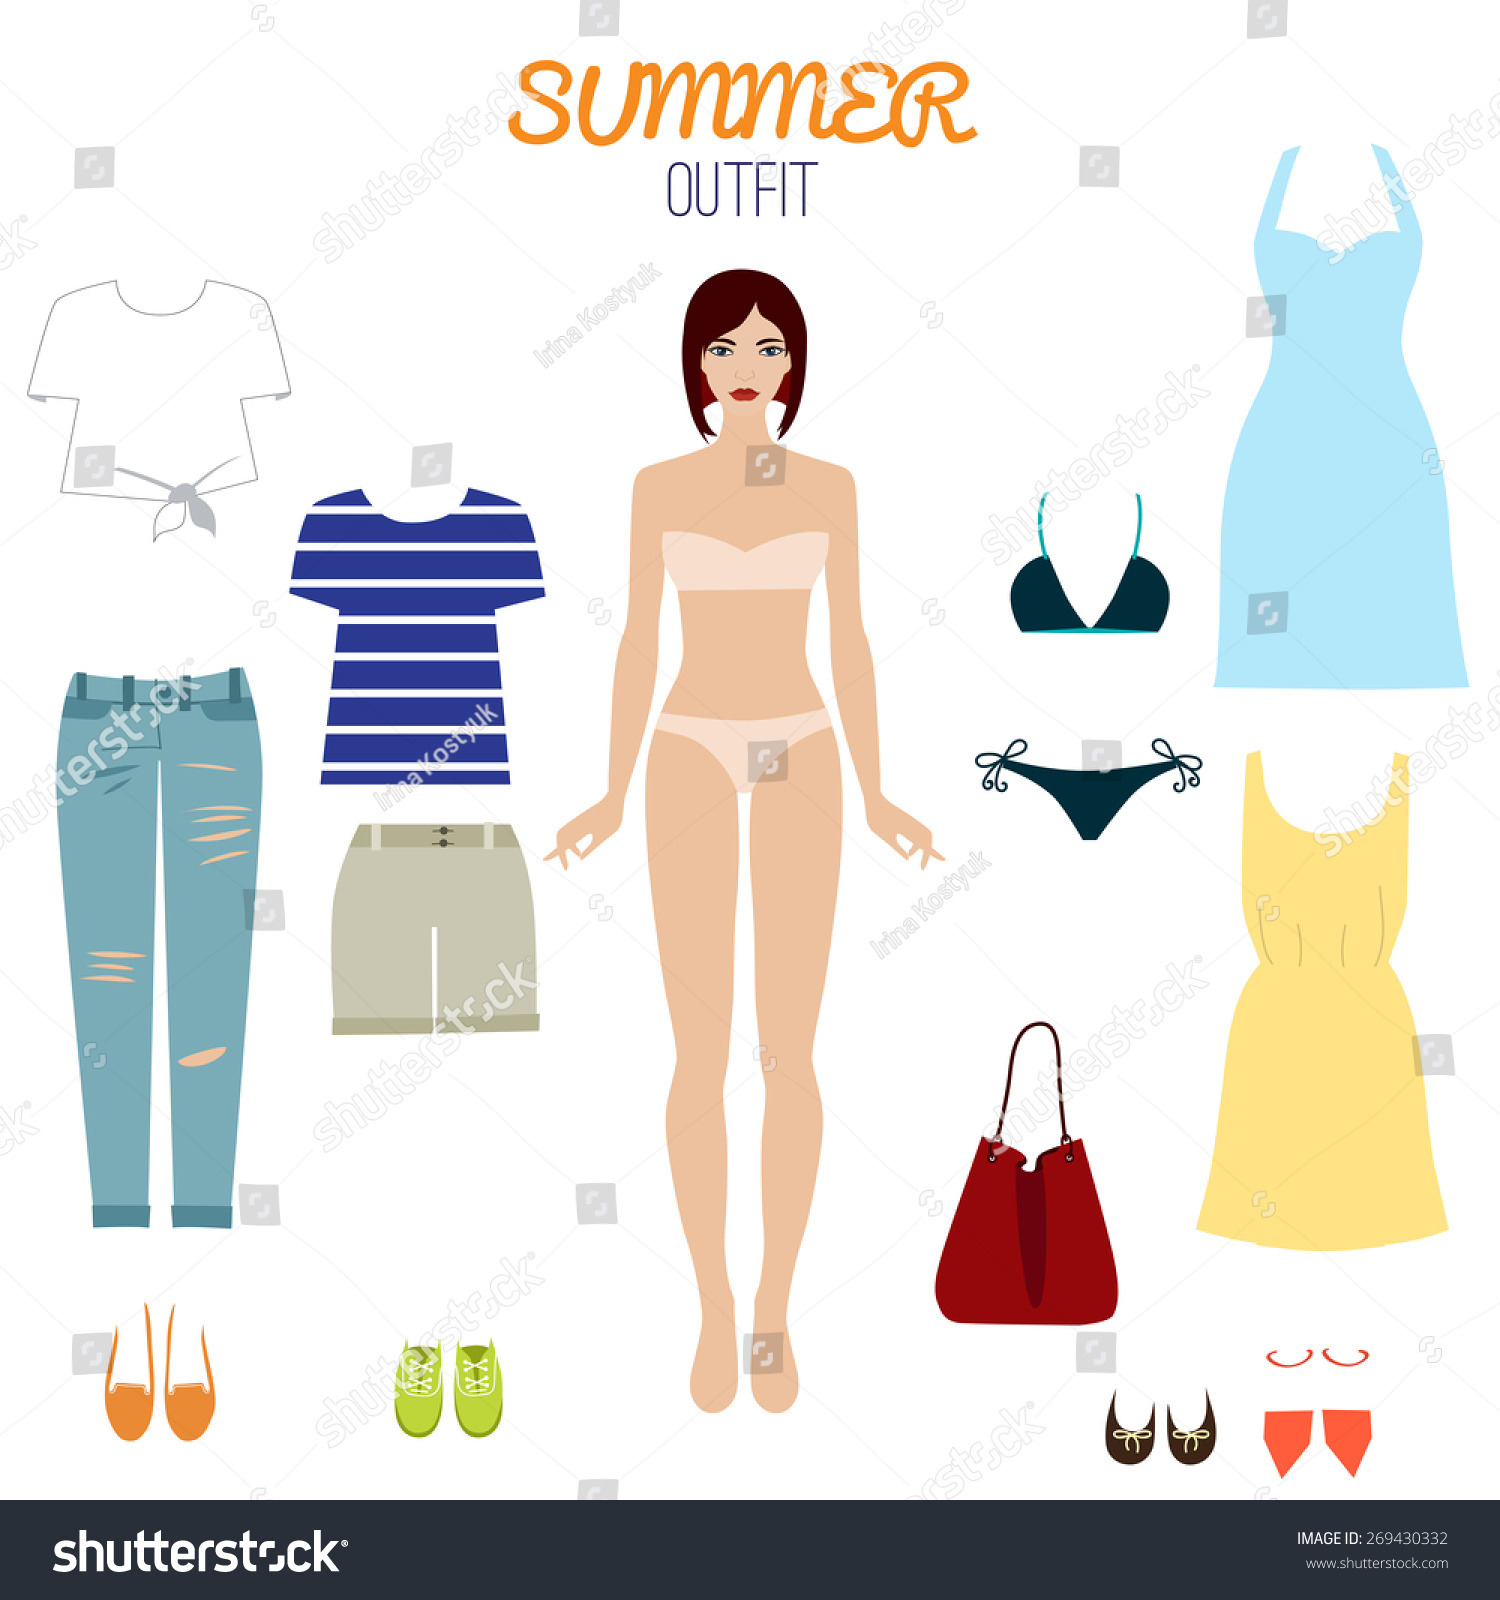 Paper doll set summer outfit fashion stock vector for Paper doll template woman